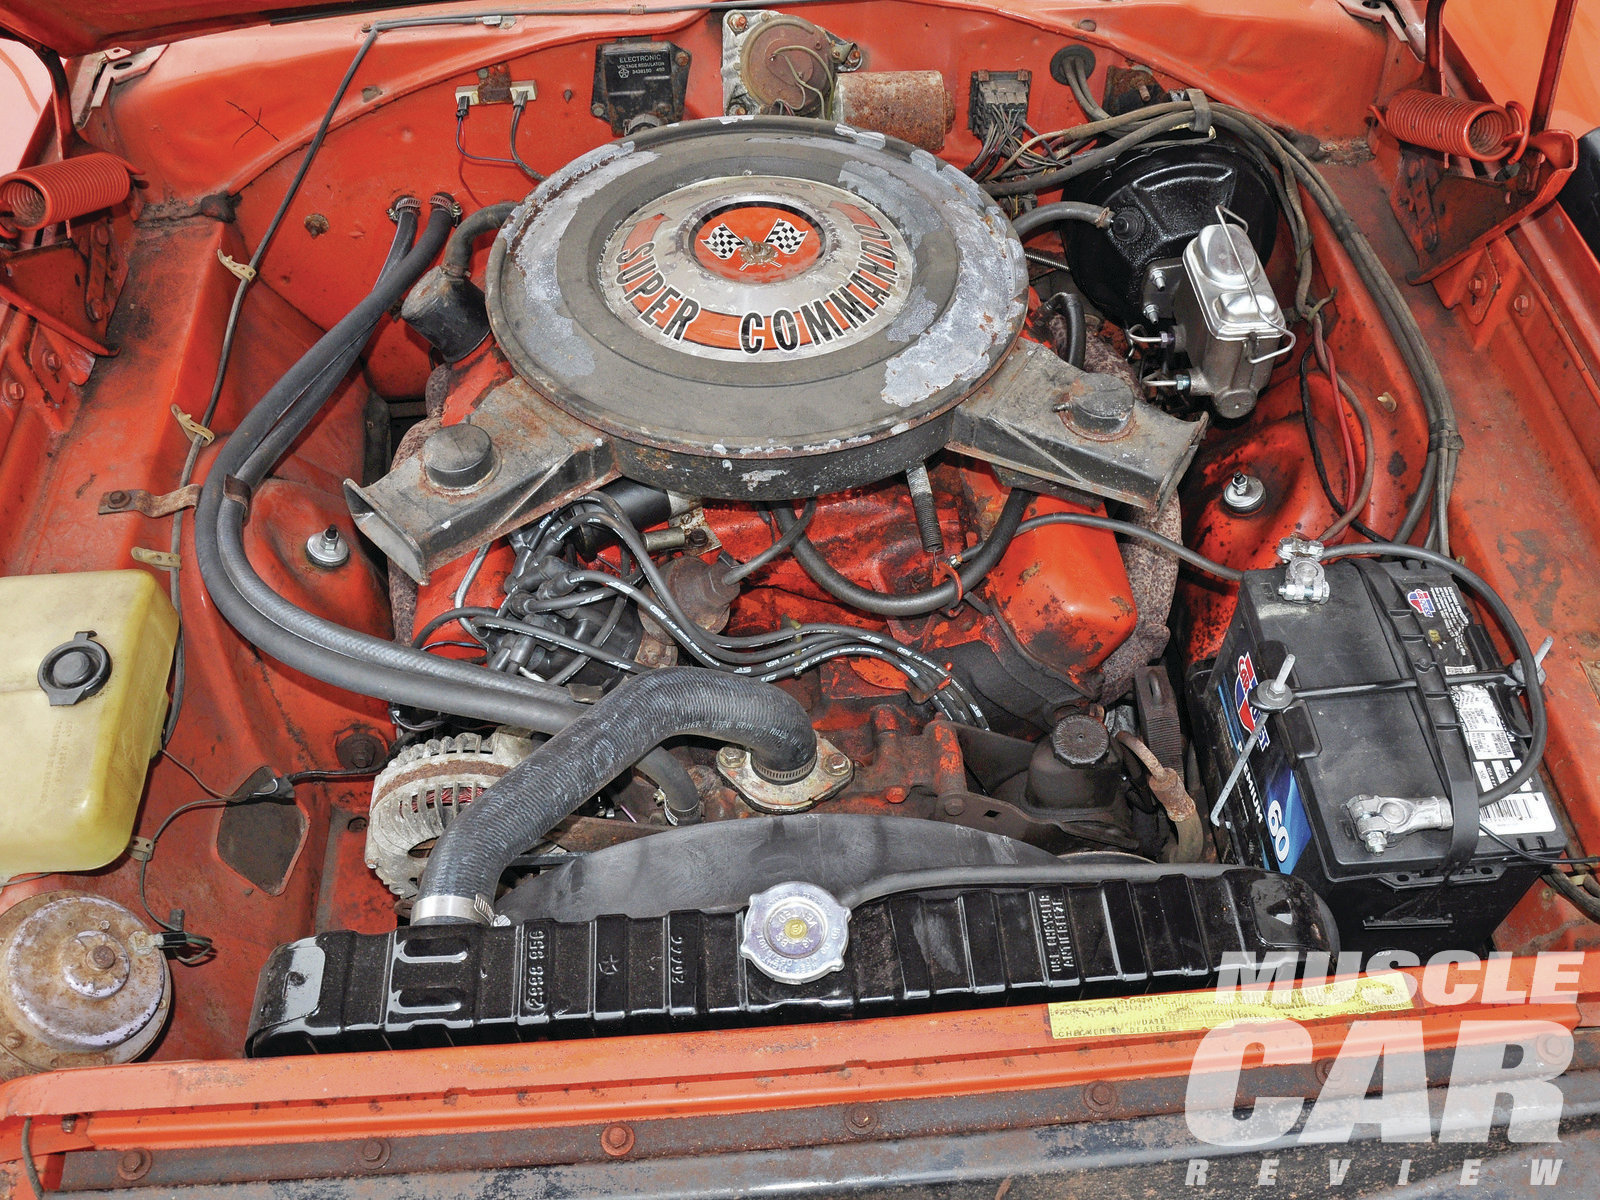 According to the Chrysler Historical Society, 1,084 units were built with the standard 440/375hp engine like the one in Kent's car, 716 were equipped with the optional 440/390 Six Pack, and 135 were powered by the Hemi.